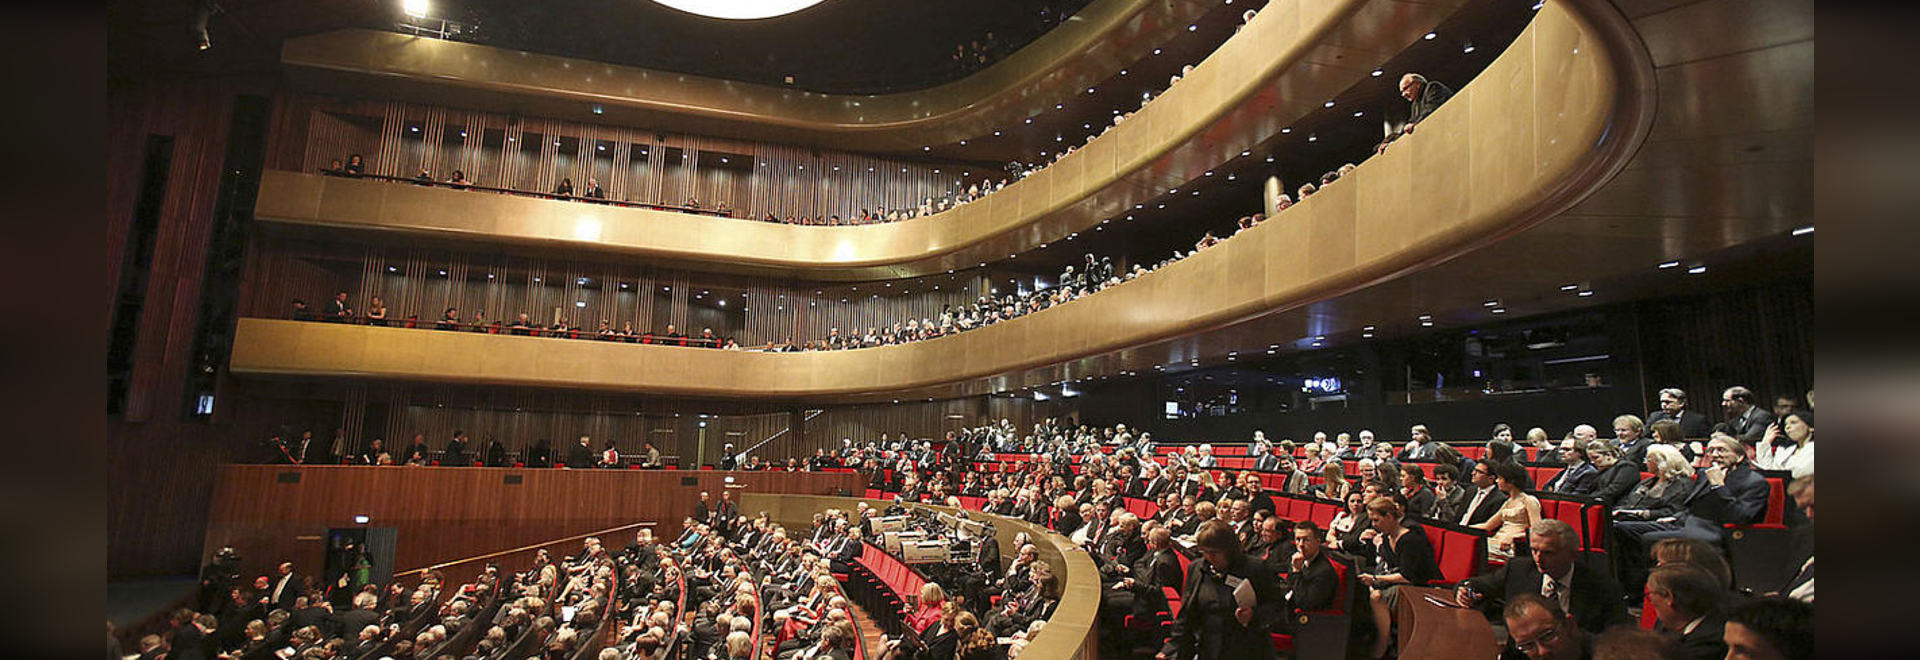 Sound insulation and vibration isolation in the music theatre in Linz, Austria